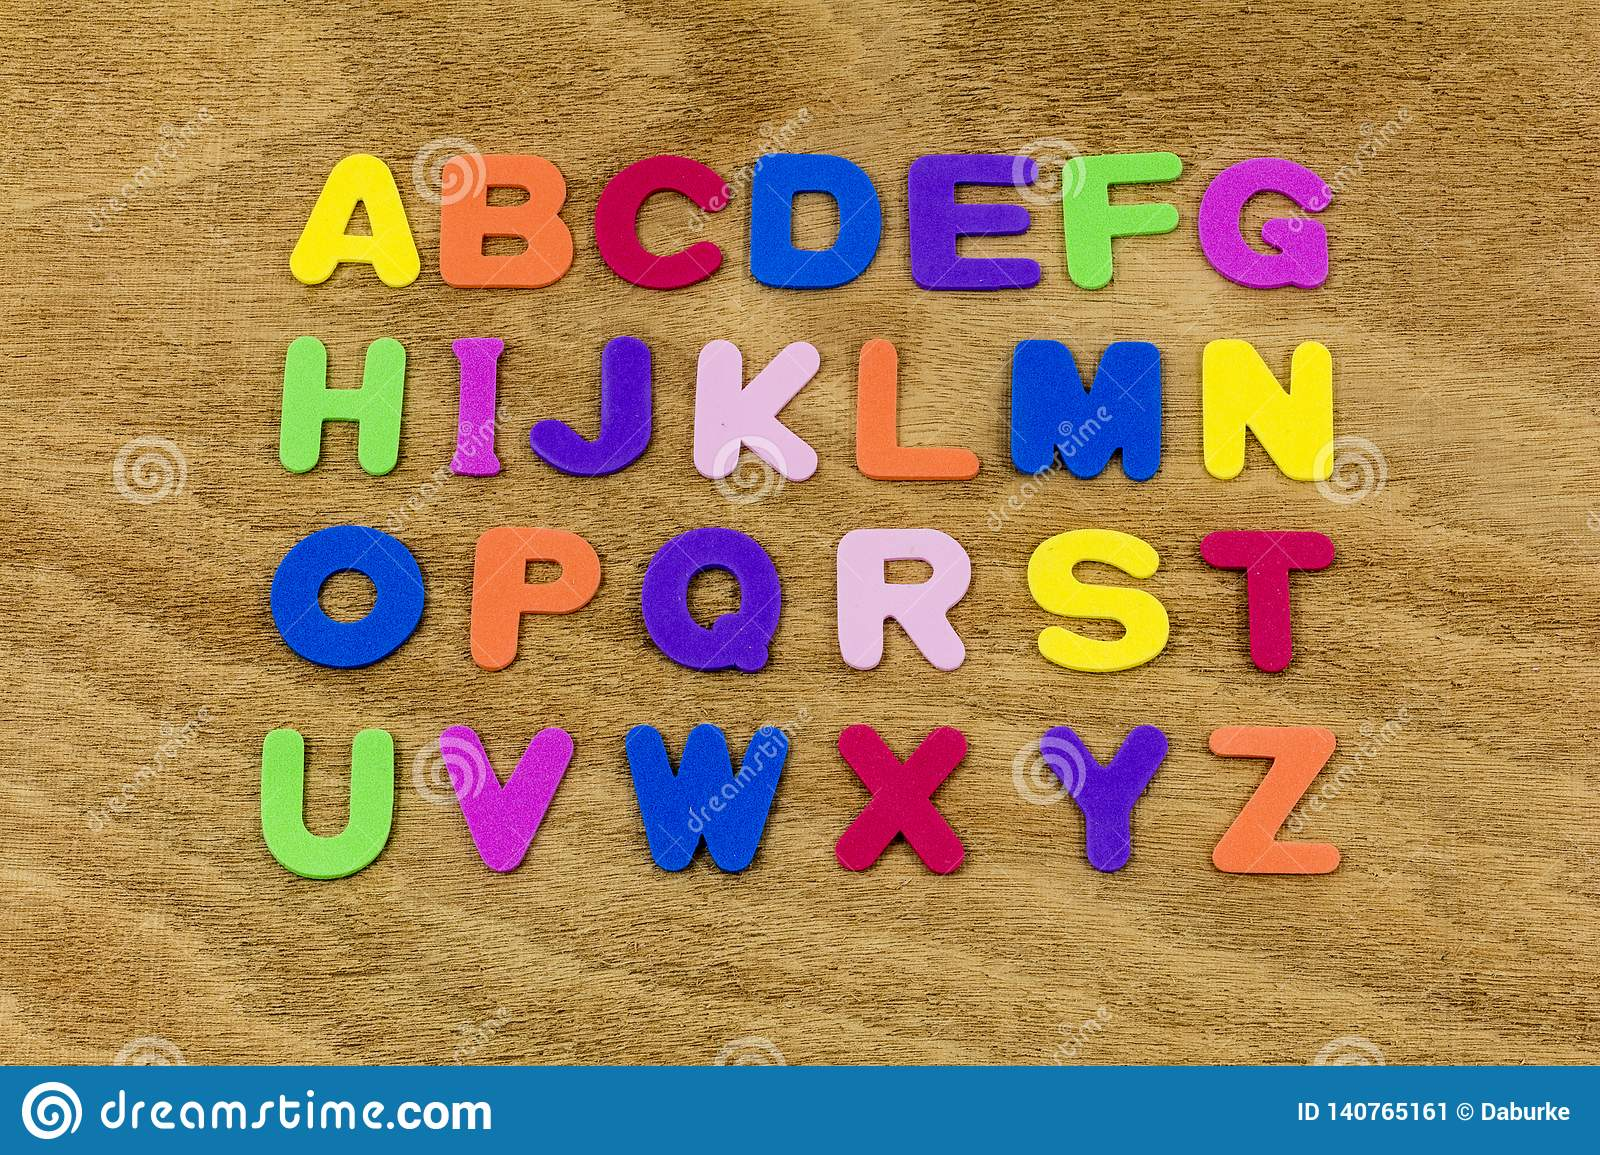 Alphabet Letters Abc Spell Spelling Plastic Words Foam Toy